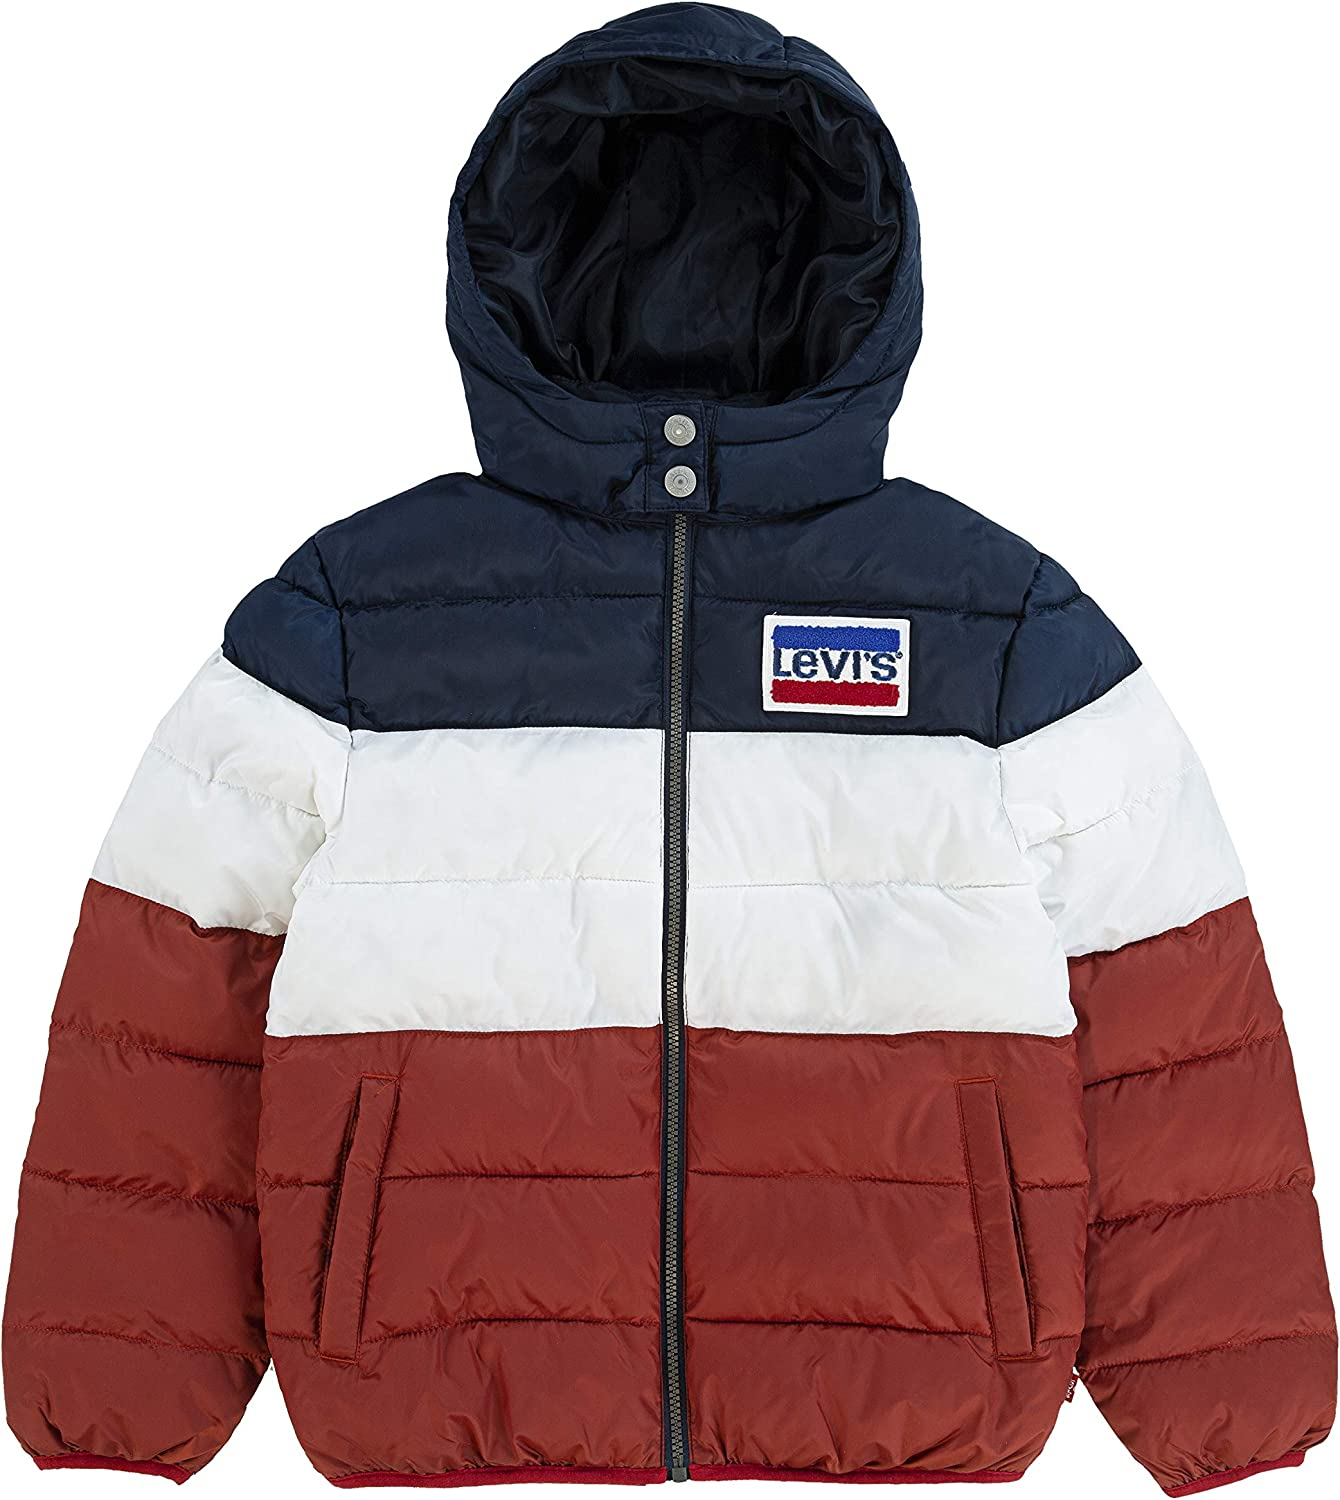 Levi's OUTERWEAR ボーイズ